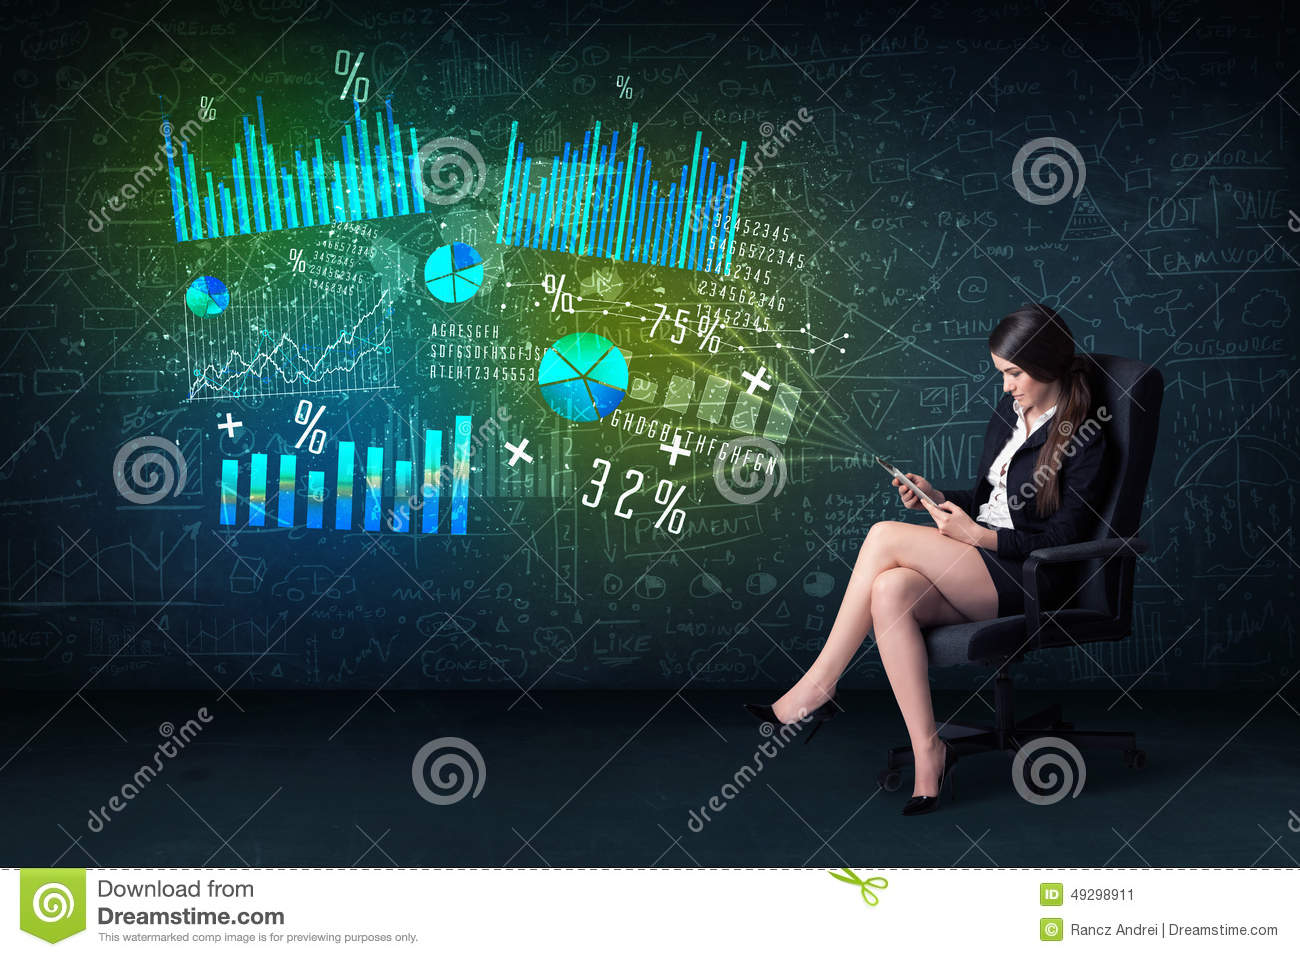 Stock Photo Businesswoman Office Tablet Hand High Tech Graph Charts Concept Background Image49298911 additionally The Most Expensive Massage Chair In The World besides 229988 in addition Portable Back Massage Cushion furthermore Canon Eos 1d Mark Iv Professional Dslr. on portable high chair